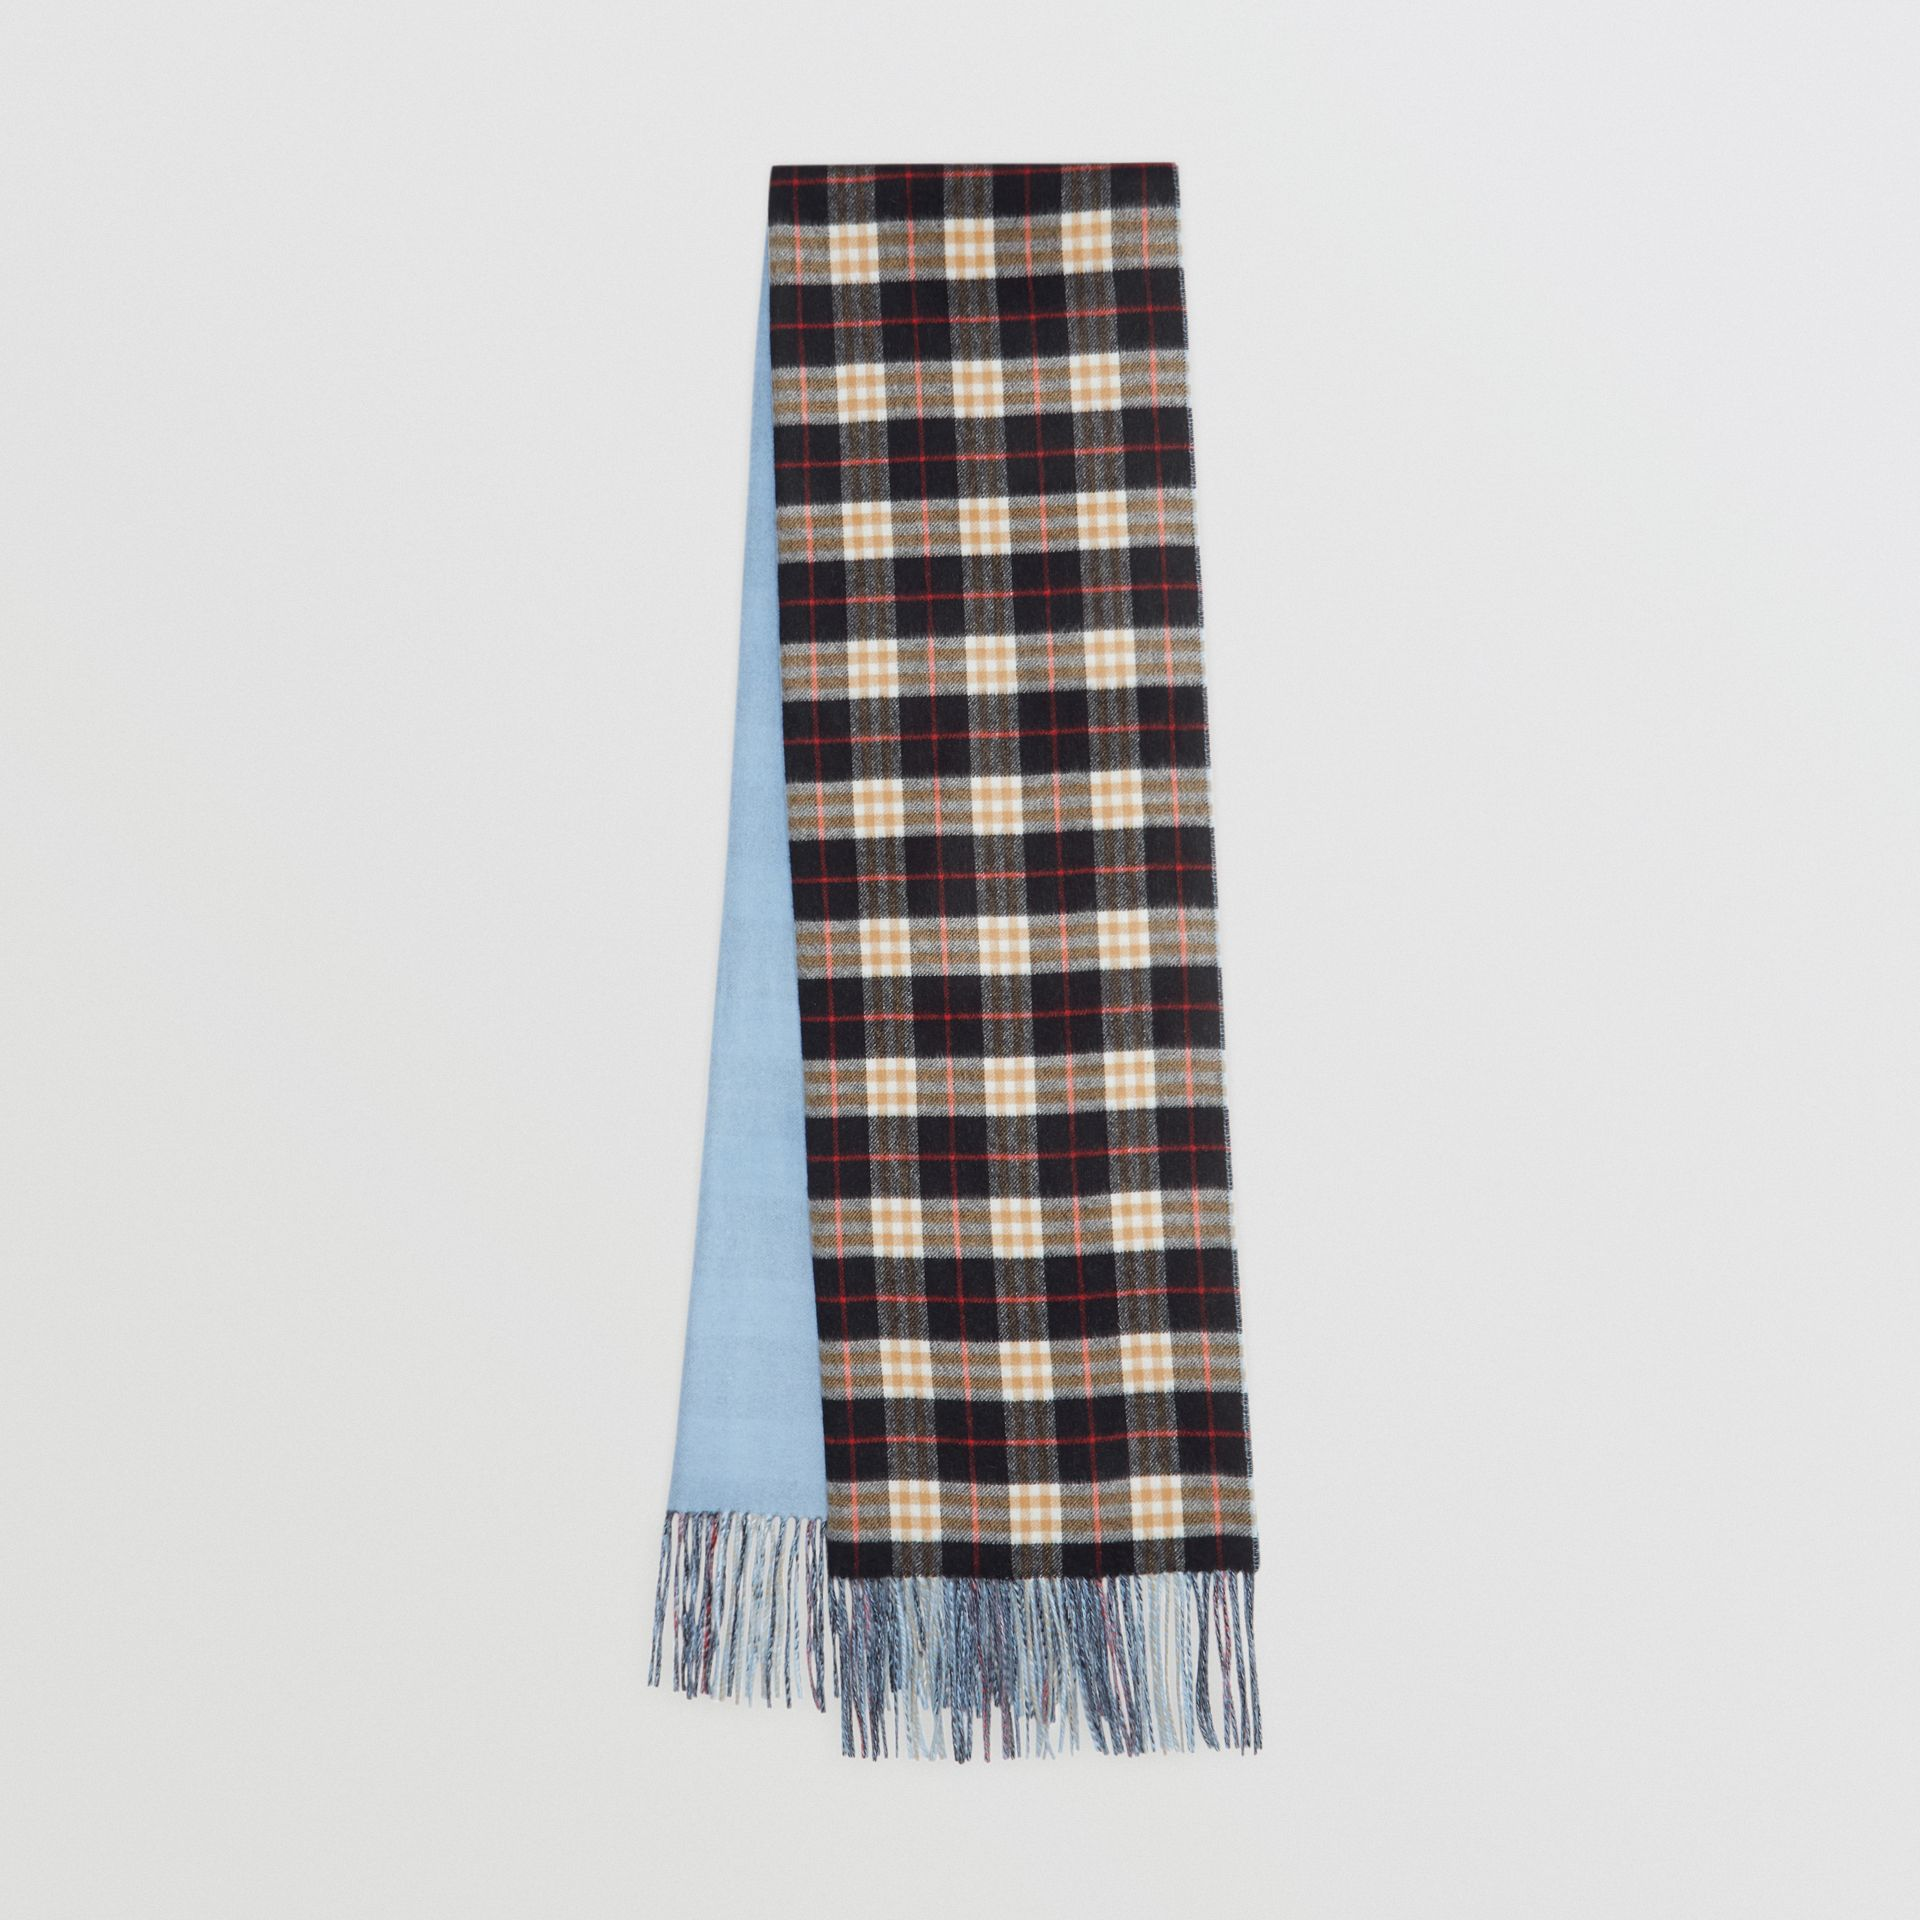 Colour Block Vintage Check Cashmere Scarf in Pale Air Force Blue | Burberry Singapore - gallery image 0